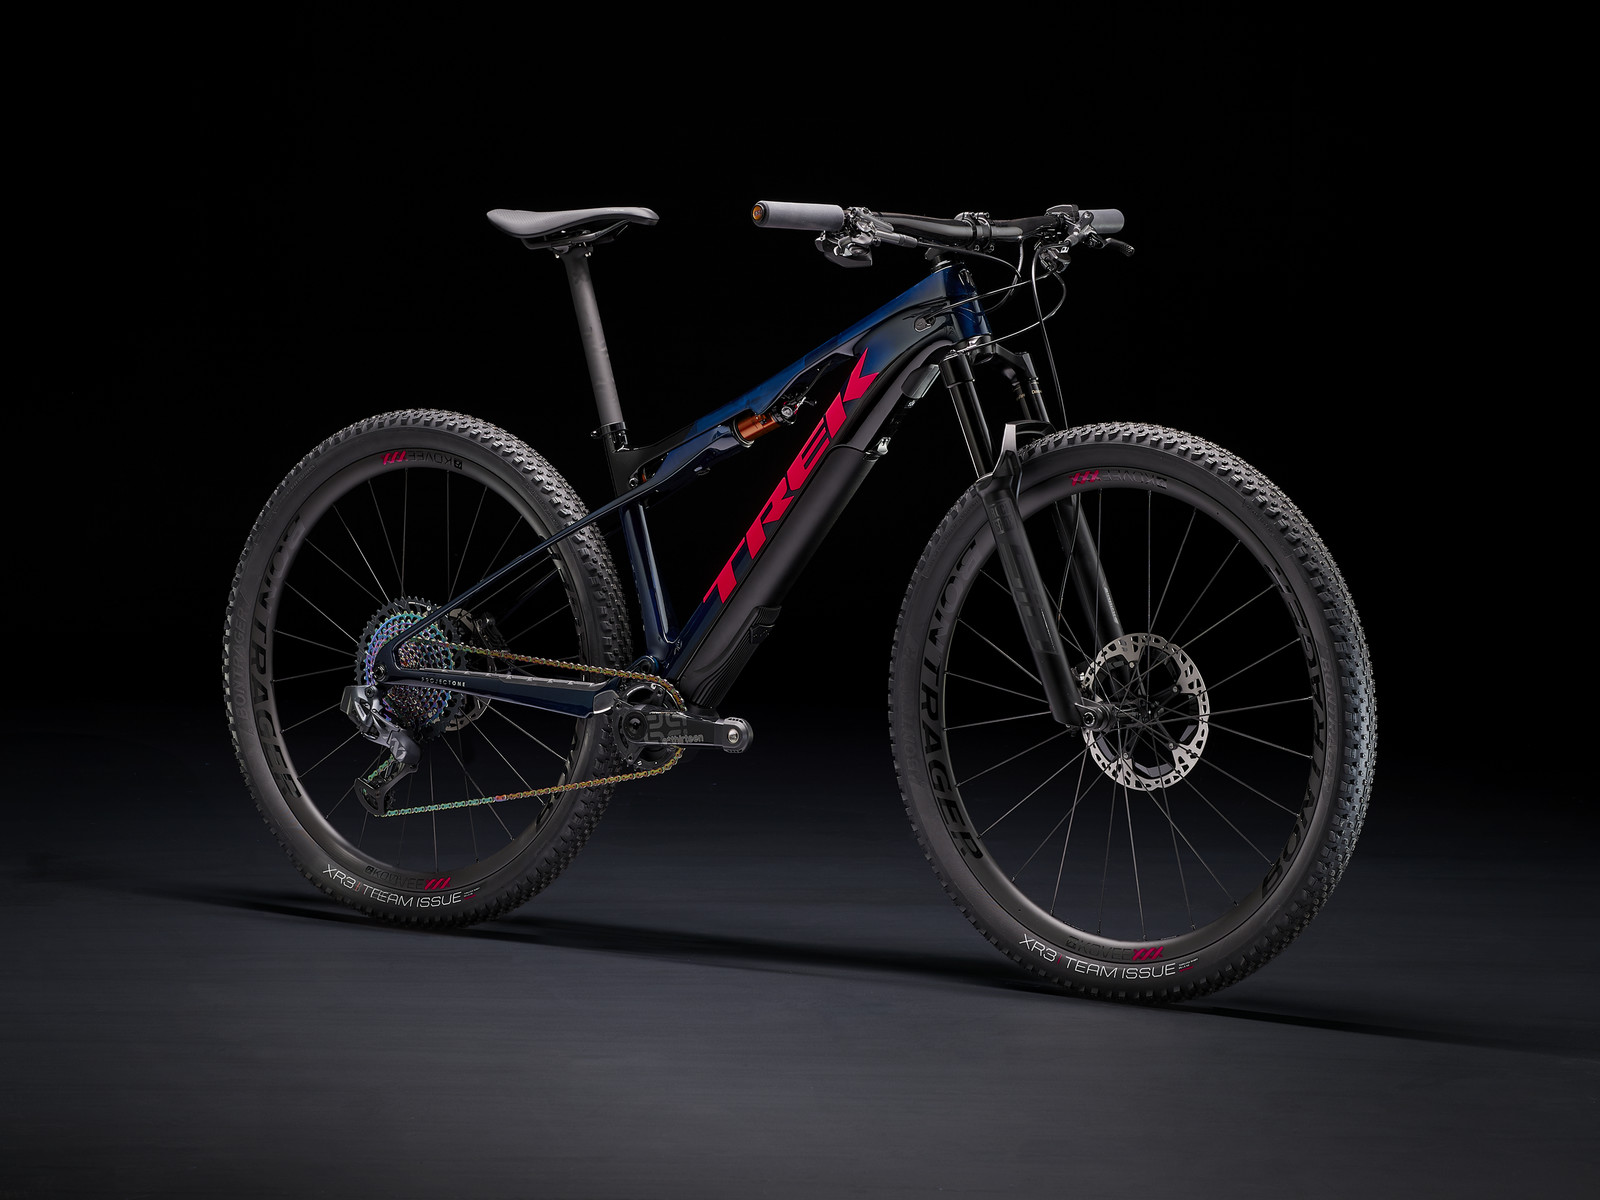 34.7 Pounds with Motor and Battery, 26.6 Pounds (and Rideable) without - Trek's New E-Caliber XC eMTB